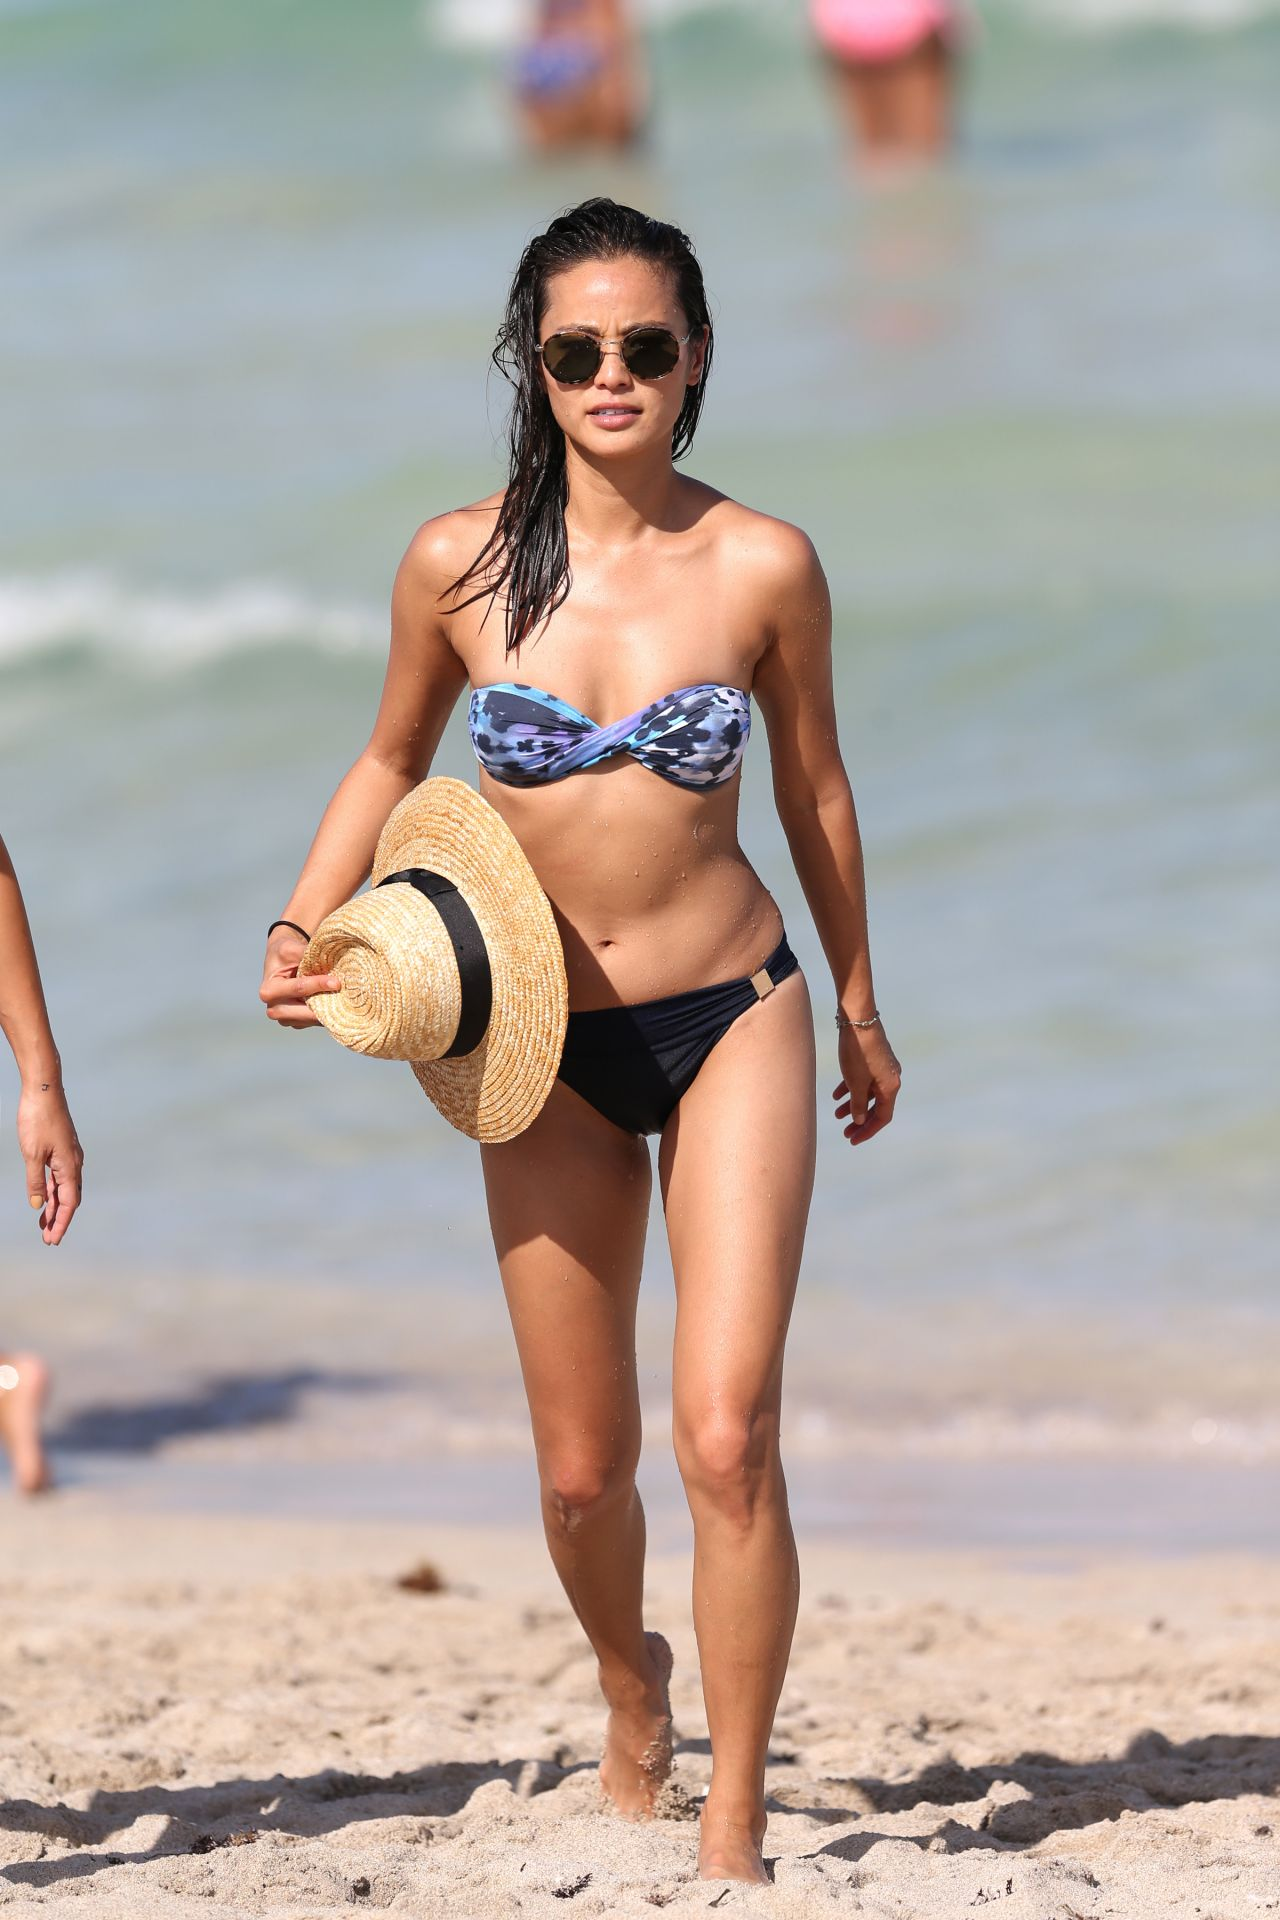 Jamie Chung In Bikini On The Beach In Miami Fl 8 5 2016